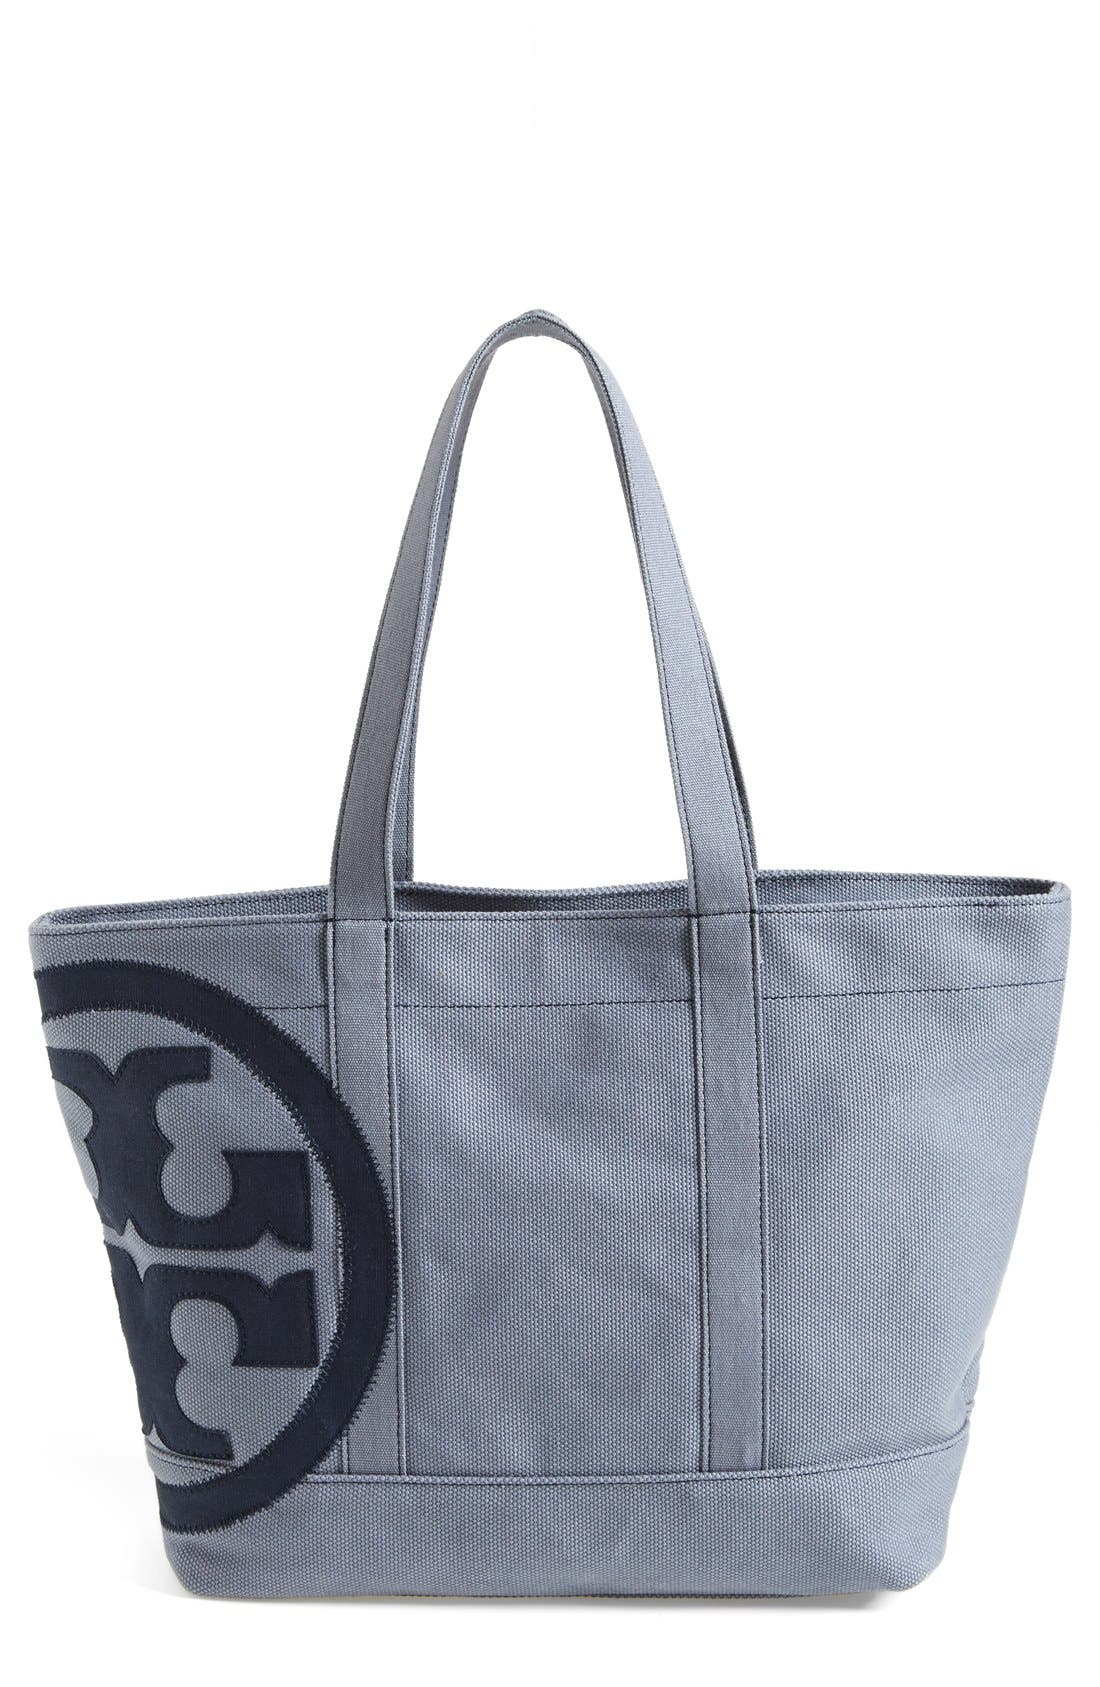 Main Image - Tory Burch 'Small' Canvas Zip Tote